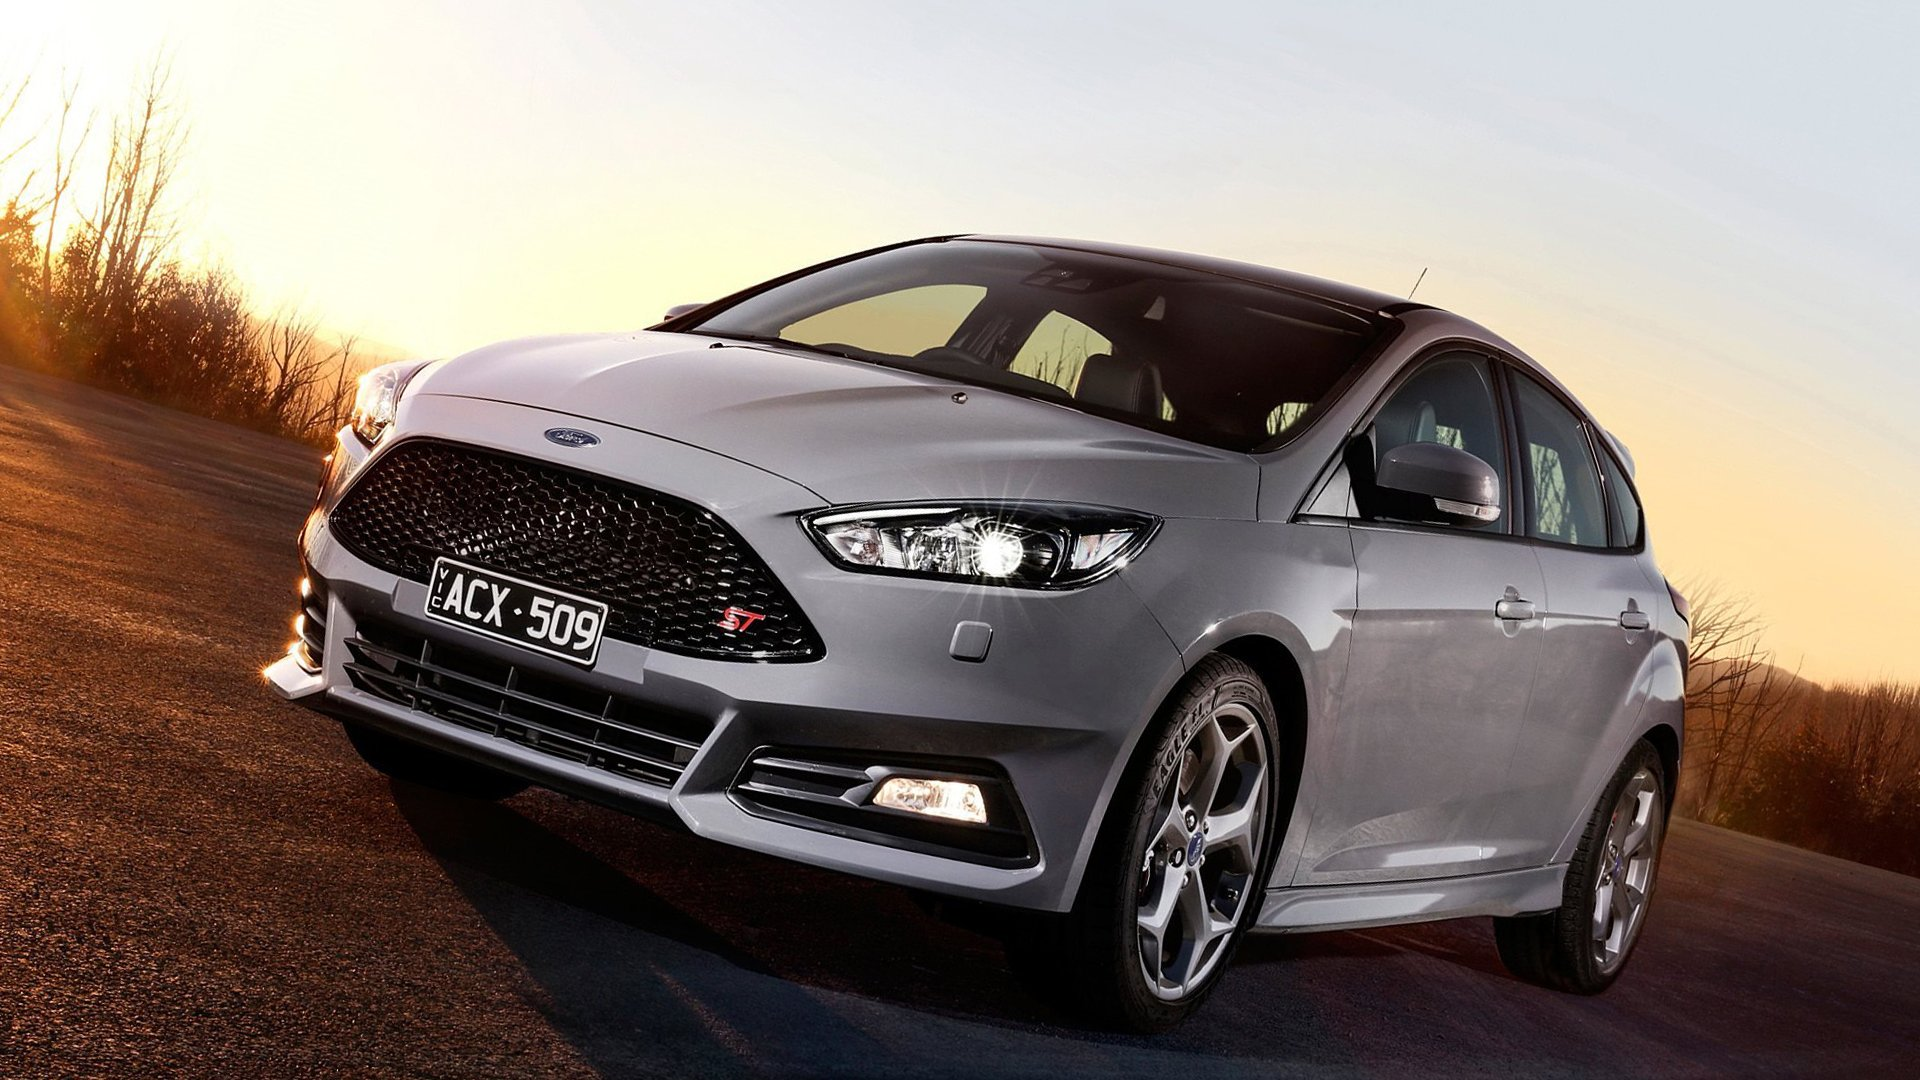 New 2019 Ford Focus Price